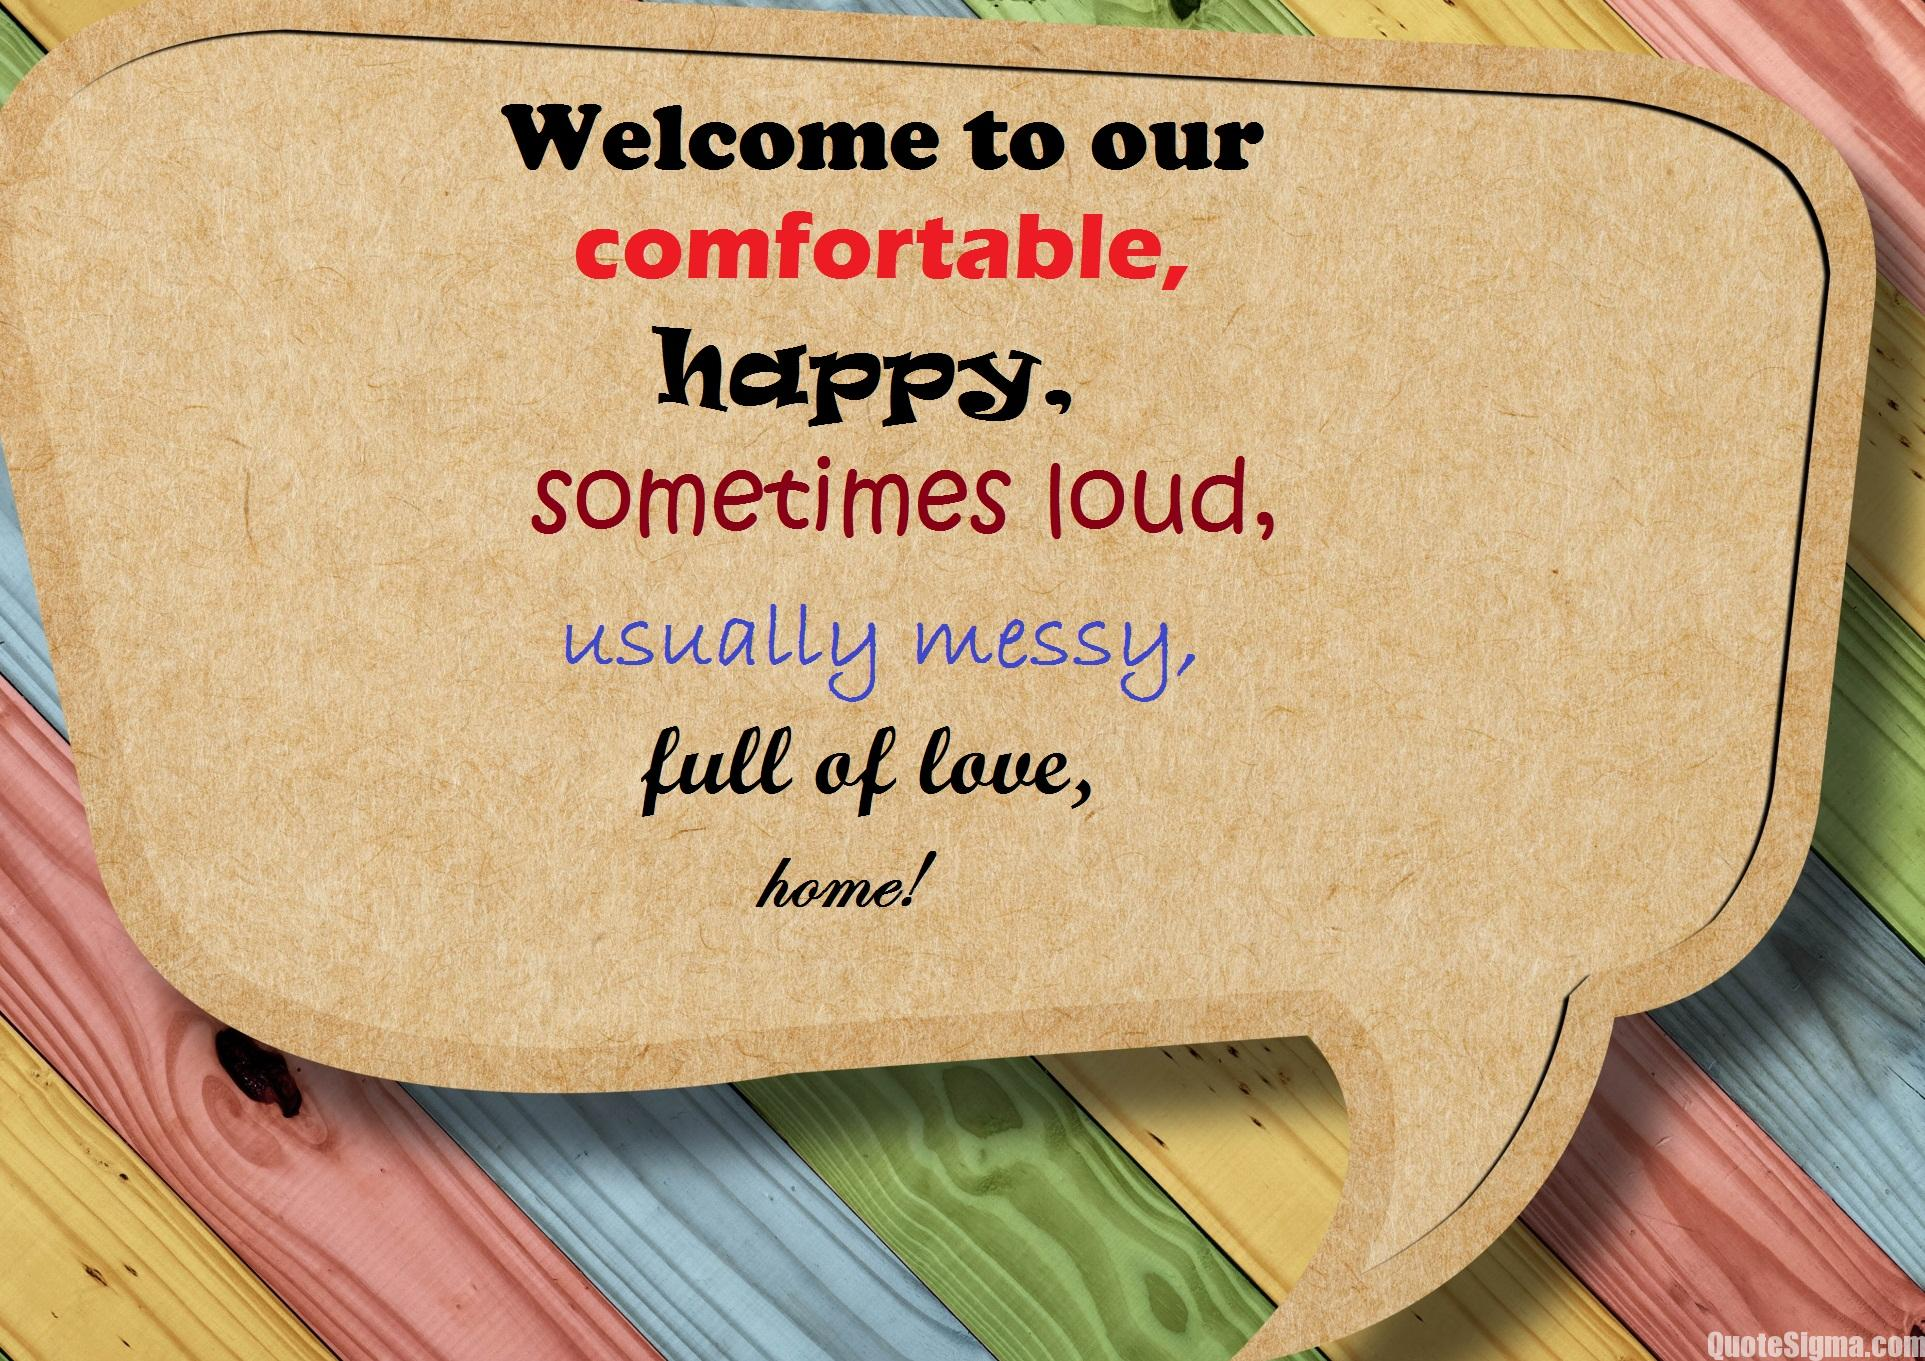 welcome-quotes-4.jpg